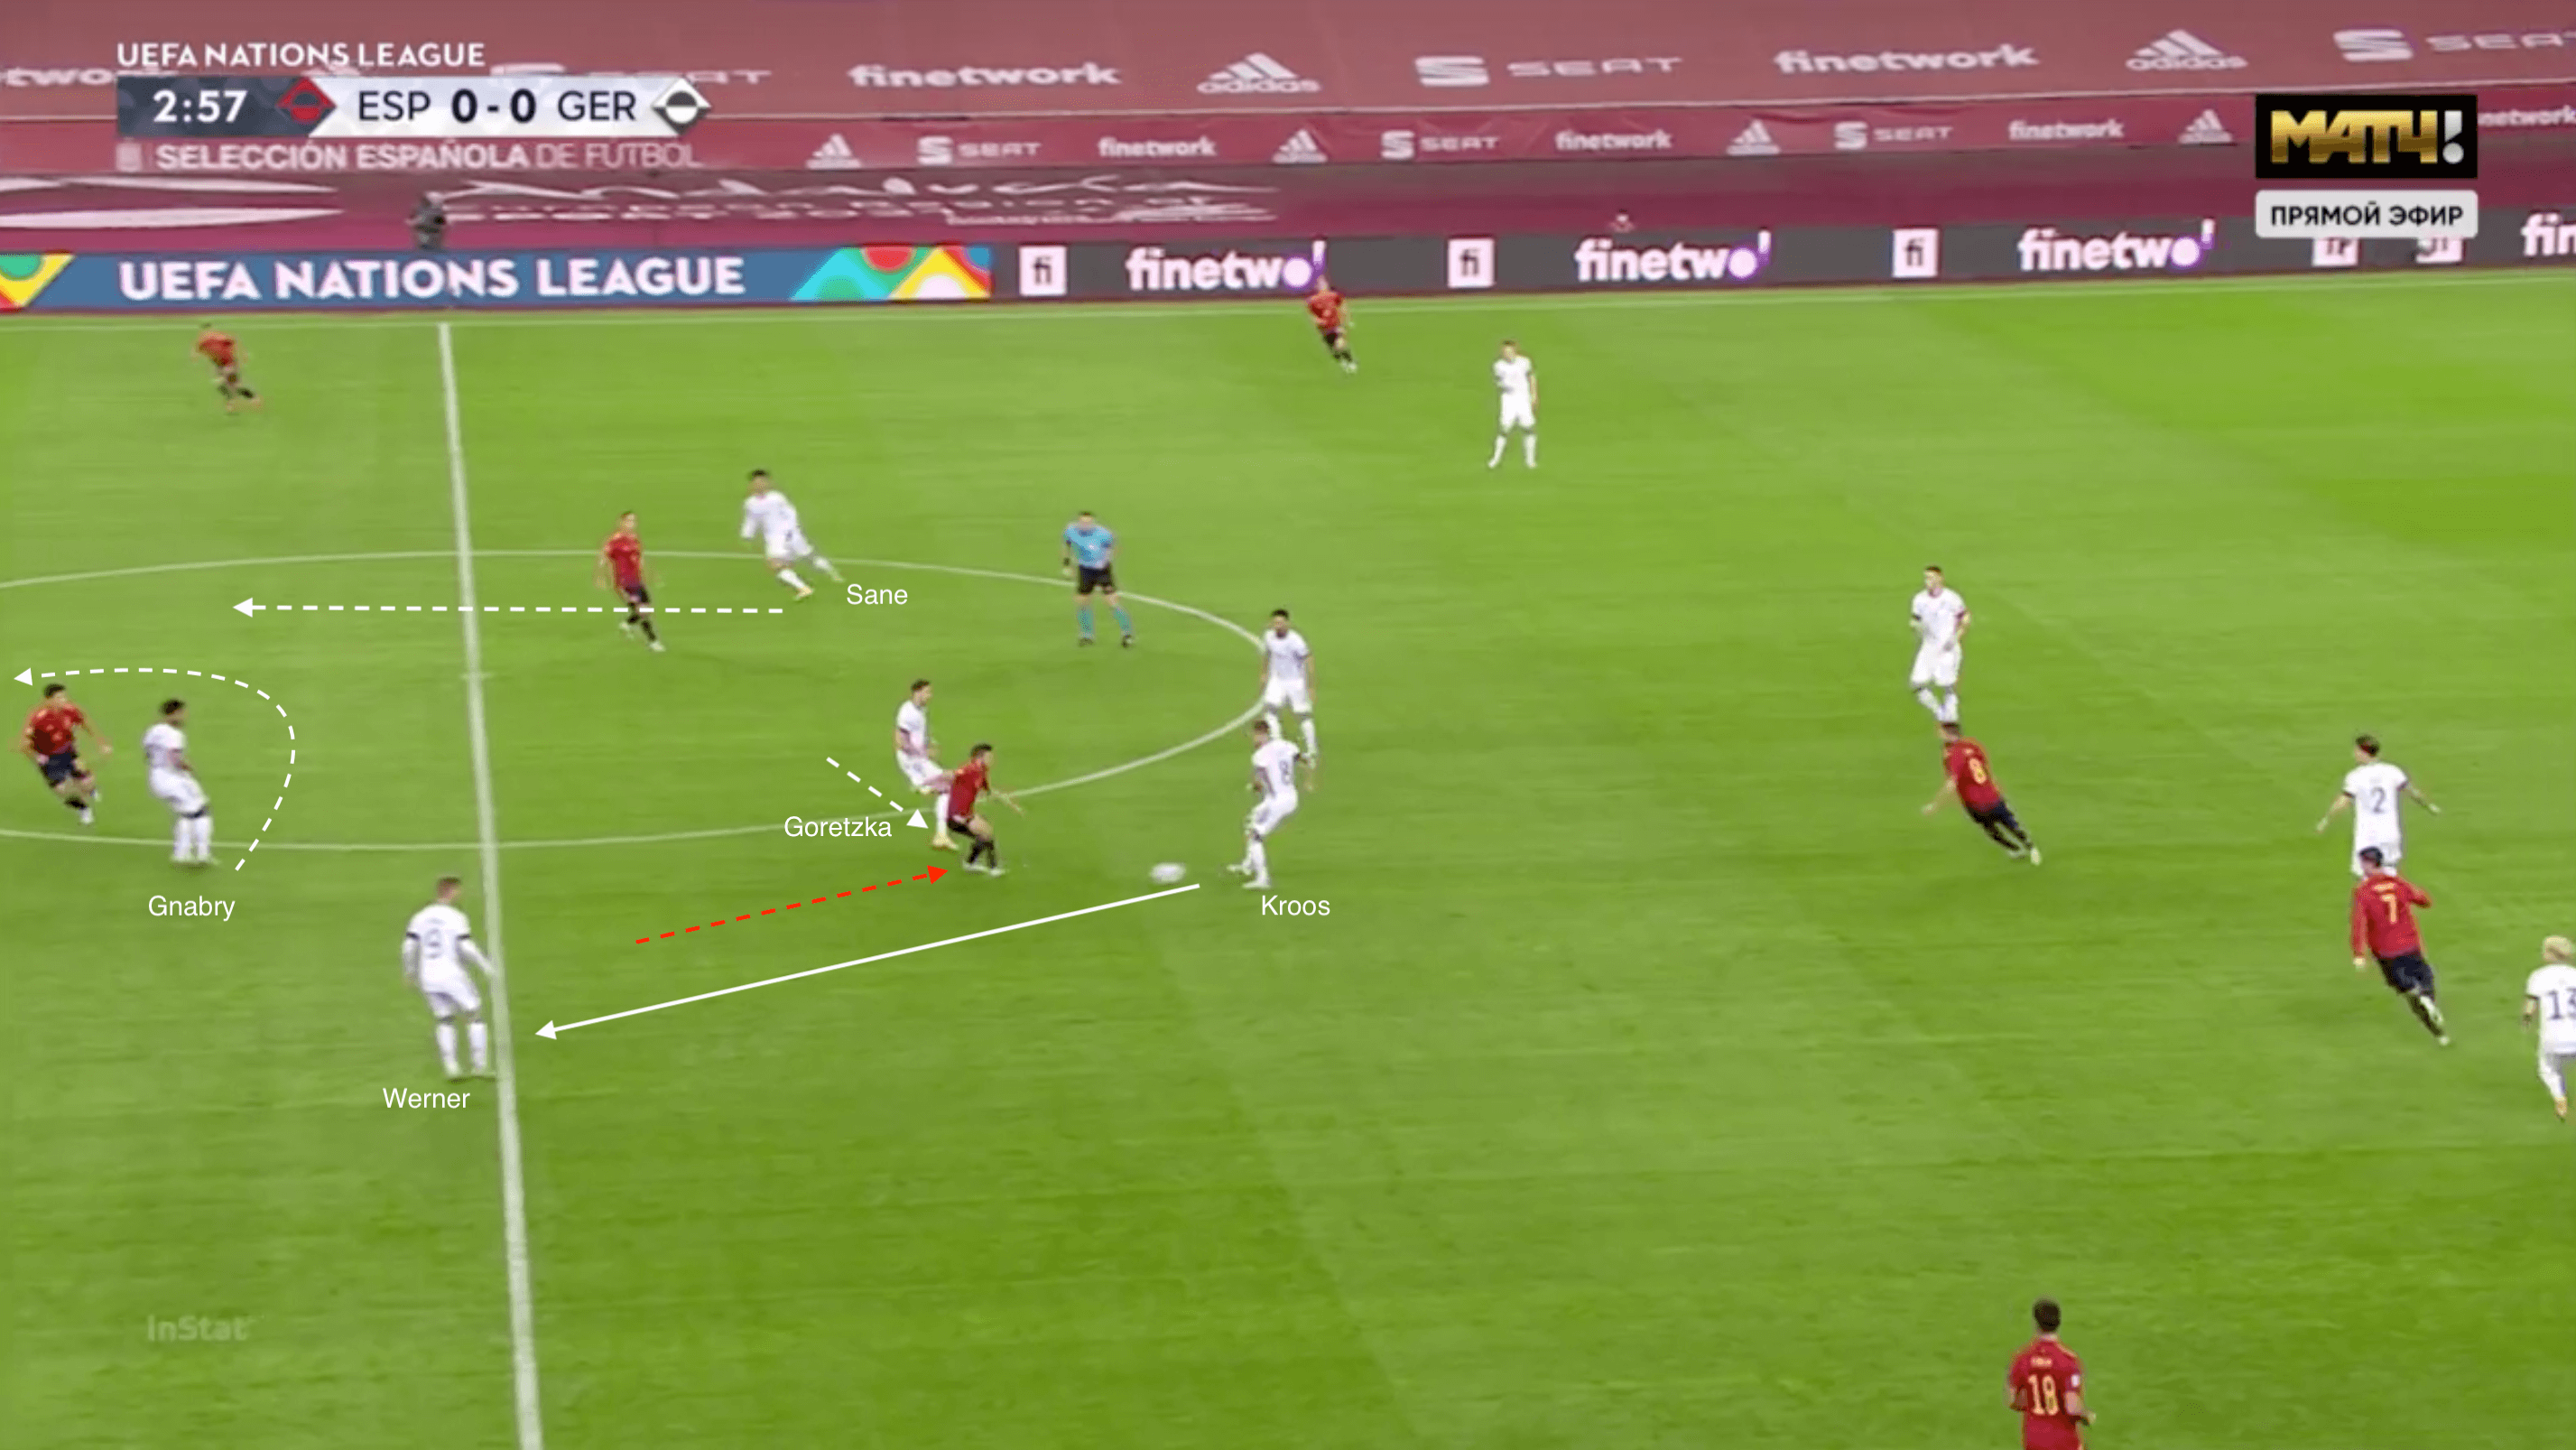 UEFA Nations League 2020/21: Spain vs Germany - tactical analysis tactics